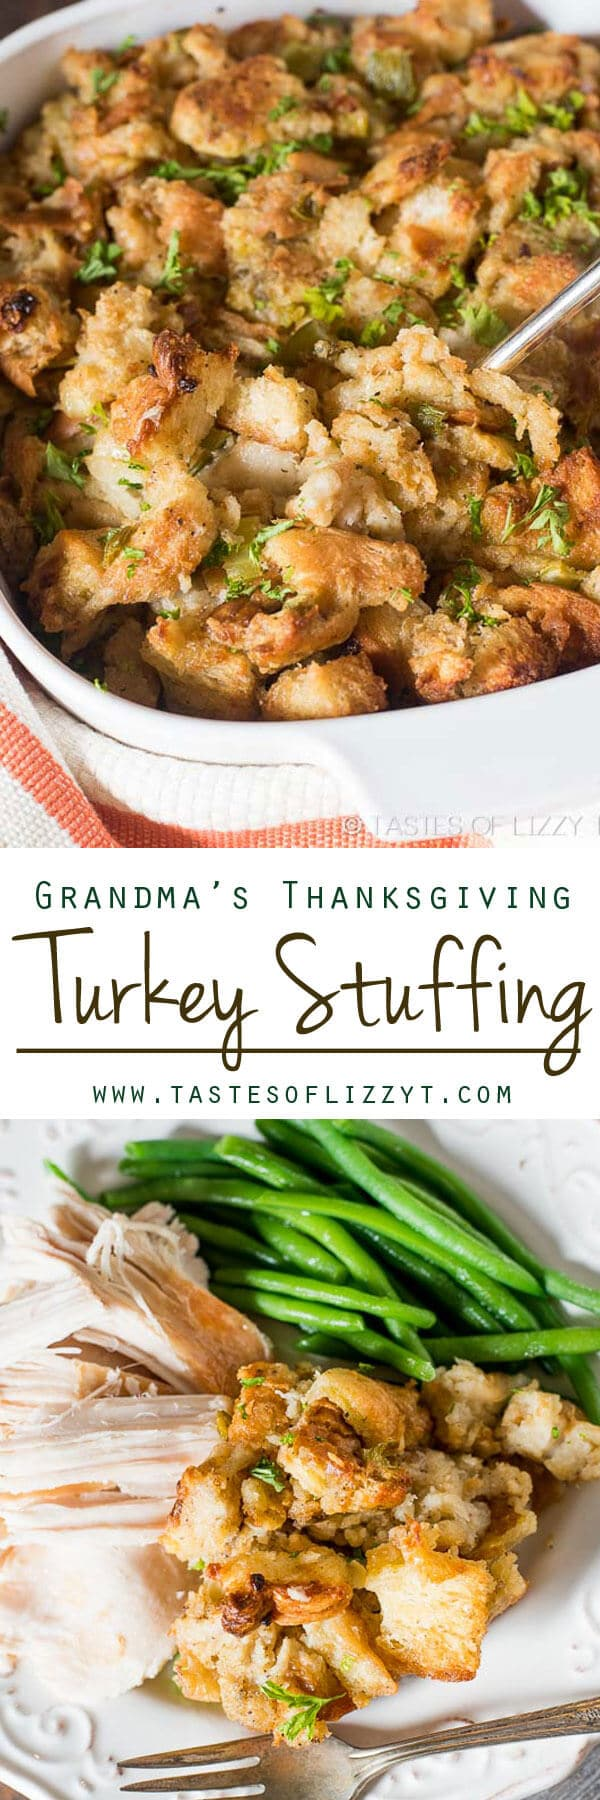 Grandma's Thanksgiving Turkey Stuffing. This is a long-time family recipe for simple and savory turkey stuffing. Bake it in the oven or in the turkey! #stuffing #turkey #thanksgiving